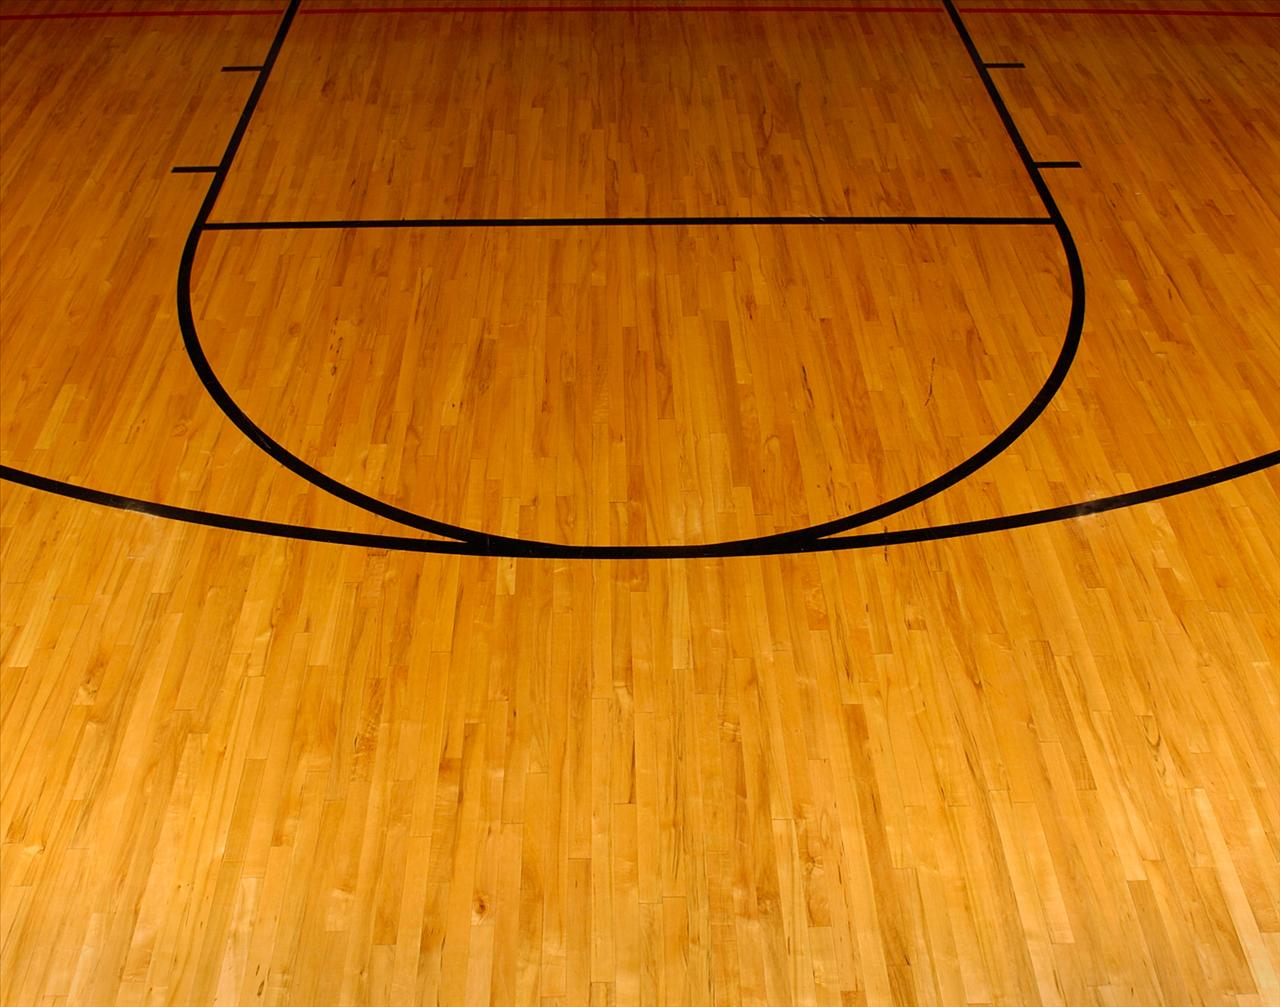 Basketball Floor Cliparts Free Download Clip Art.